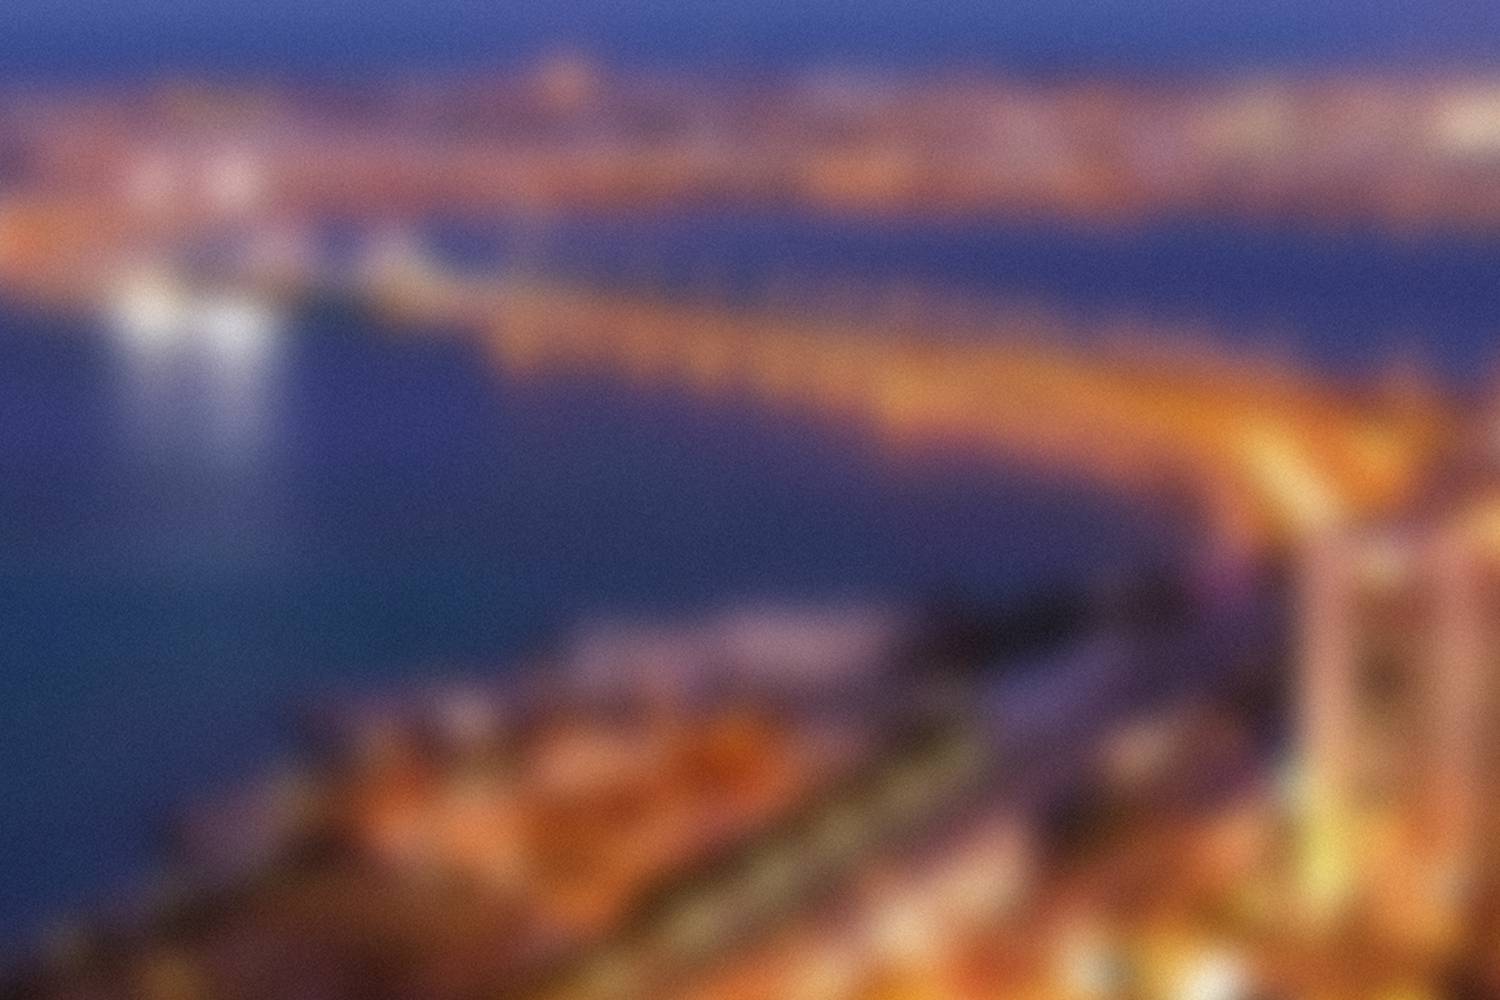 50 Blurred cities example image 2